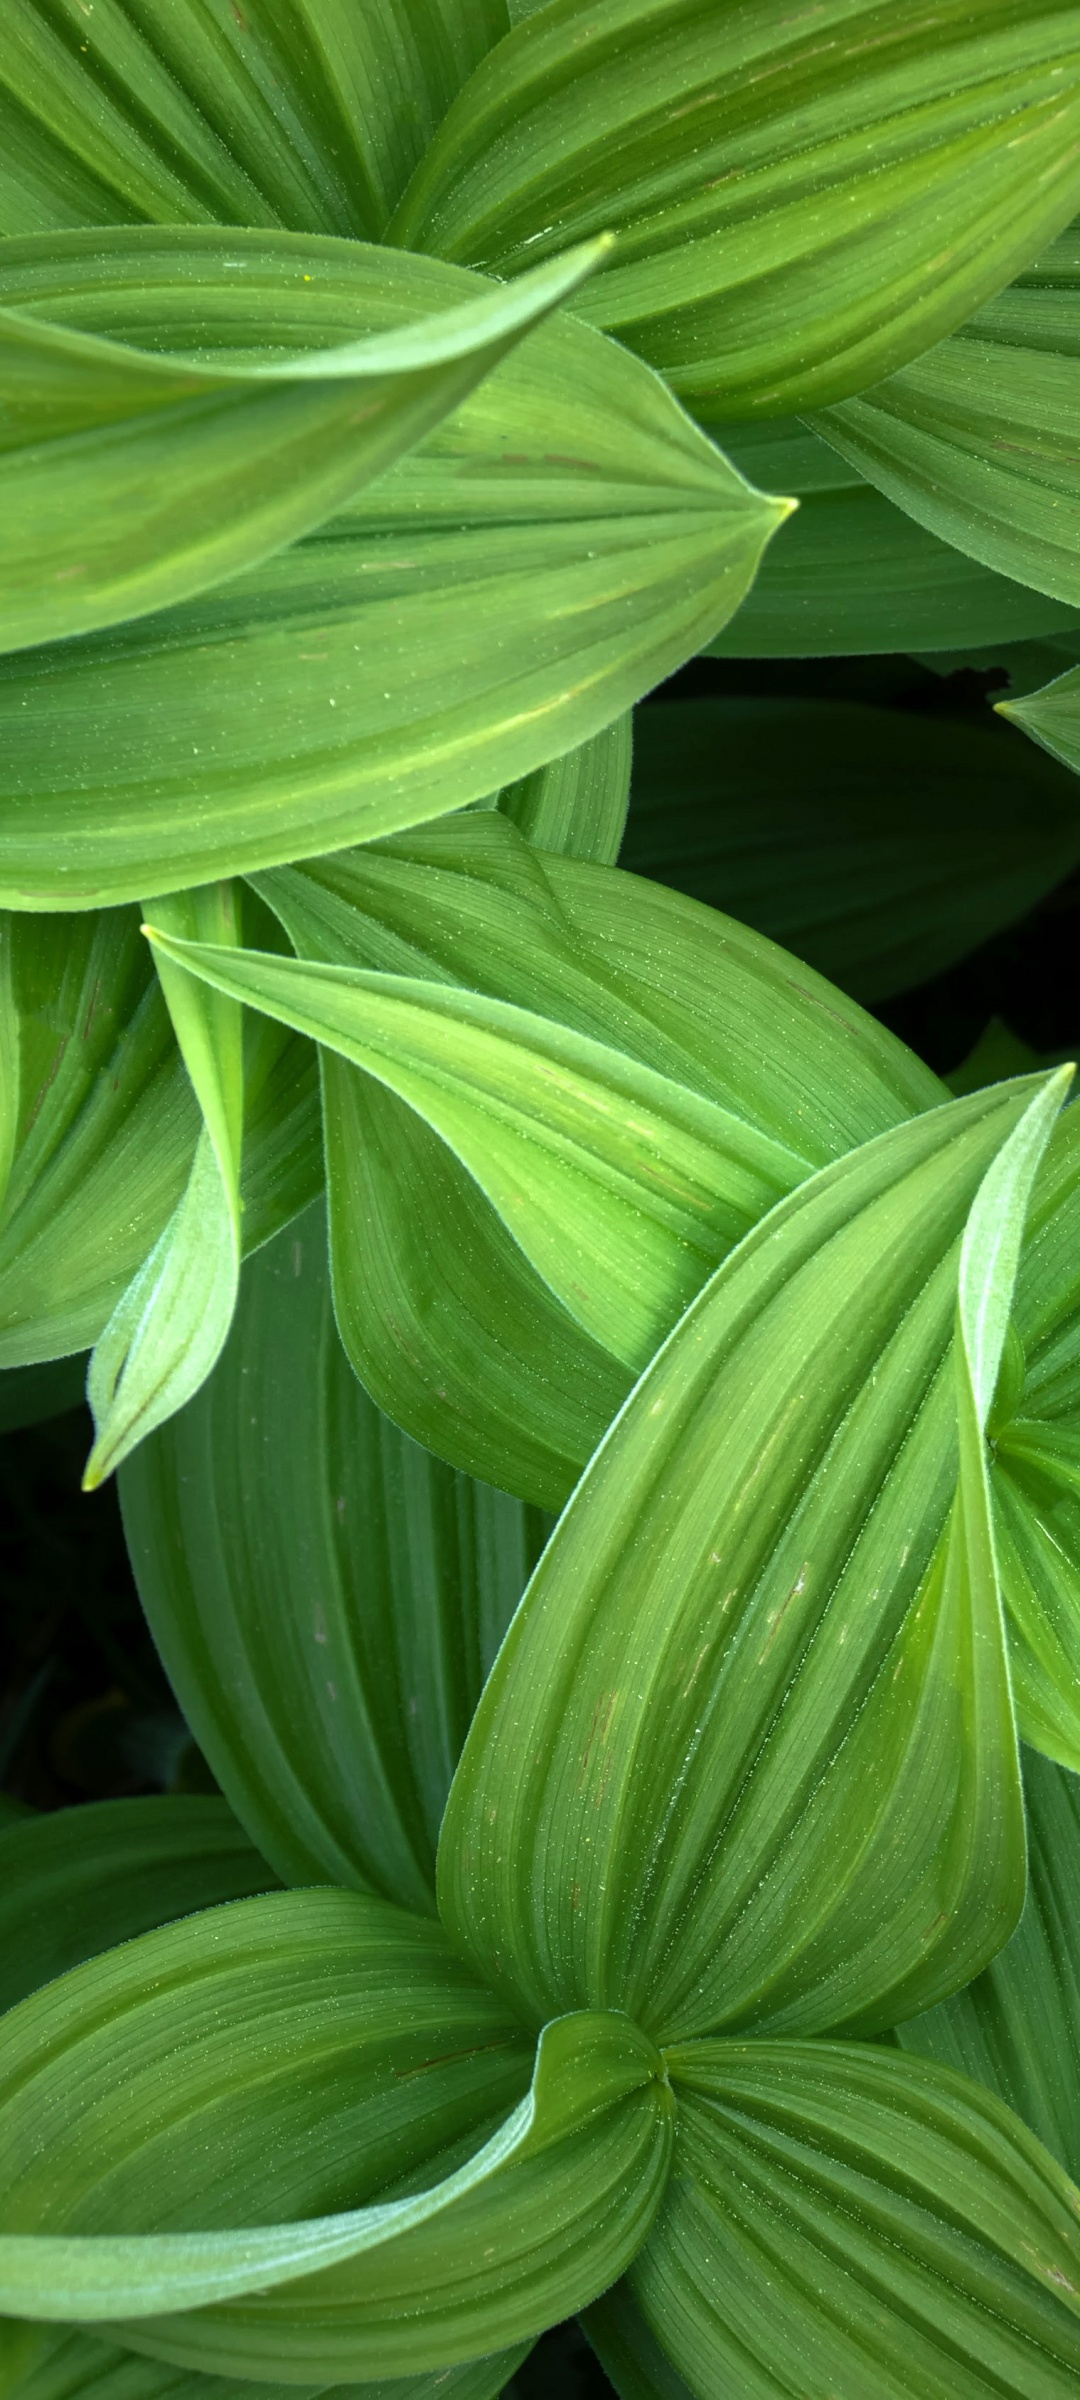 Find the perfect green pointed leaves stock photo. Green leaves 4K Wallpaper, Closeup, Plant, 5K, Nature, #2939